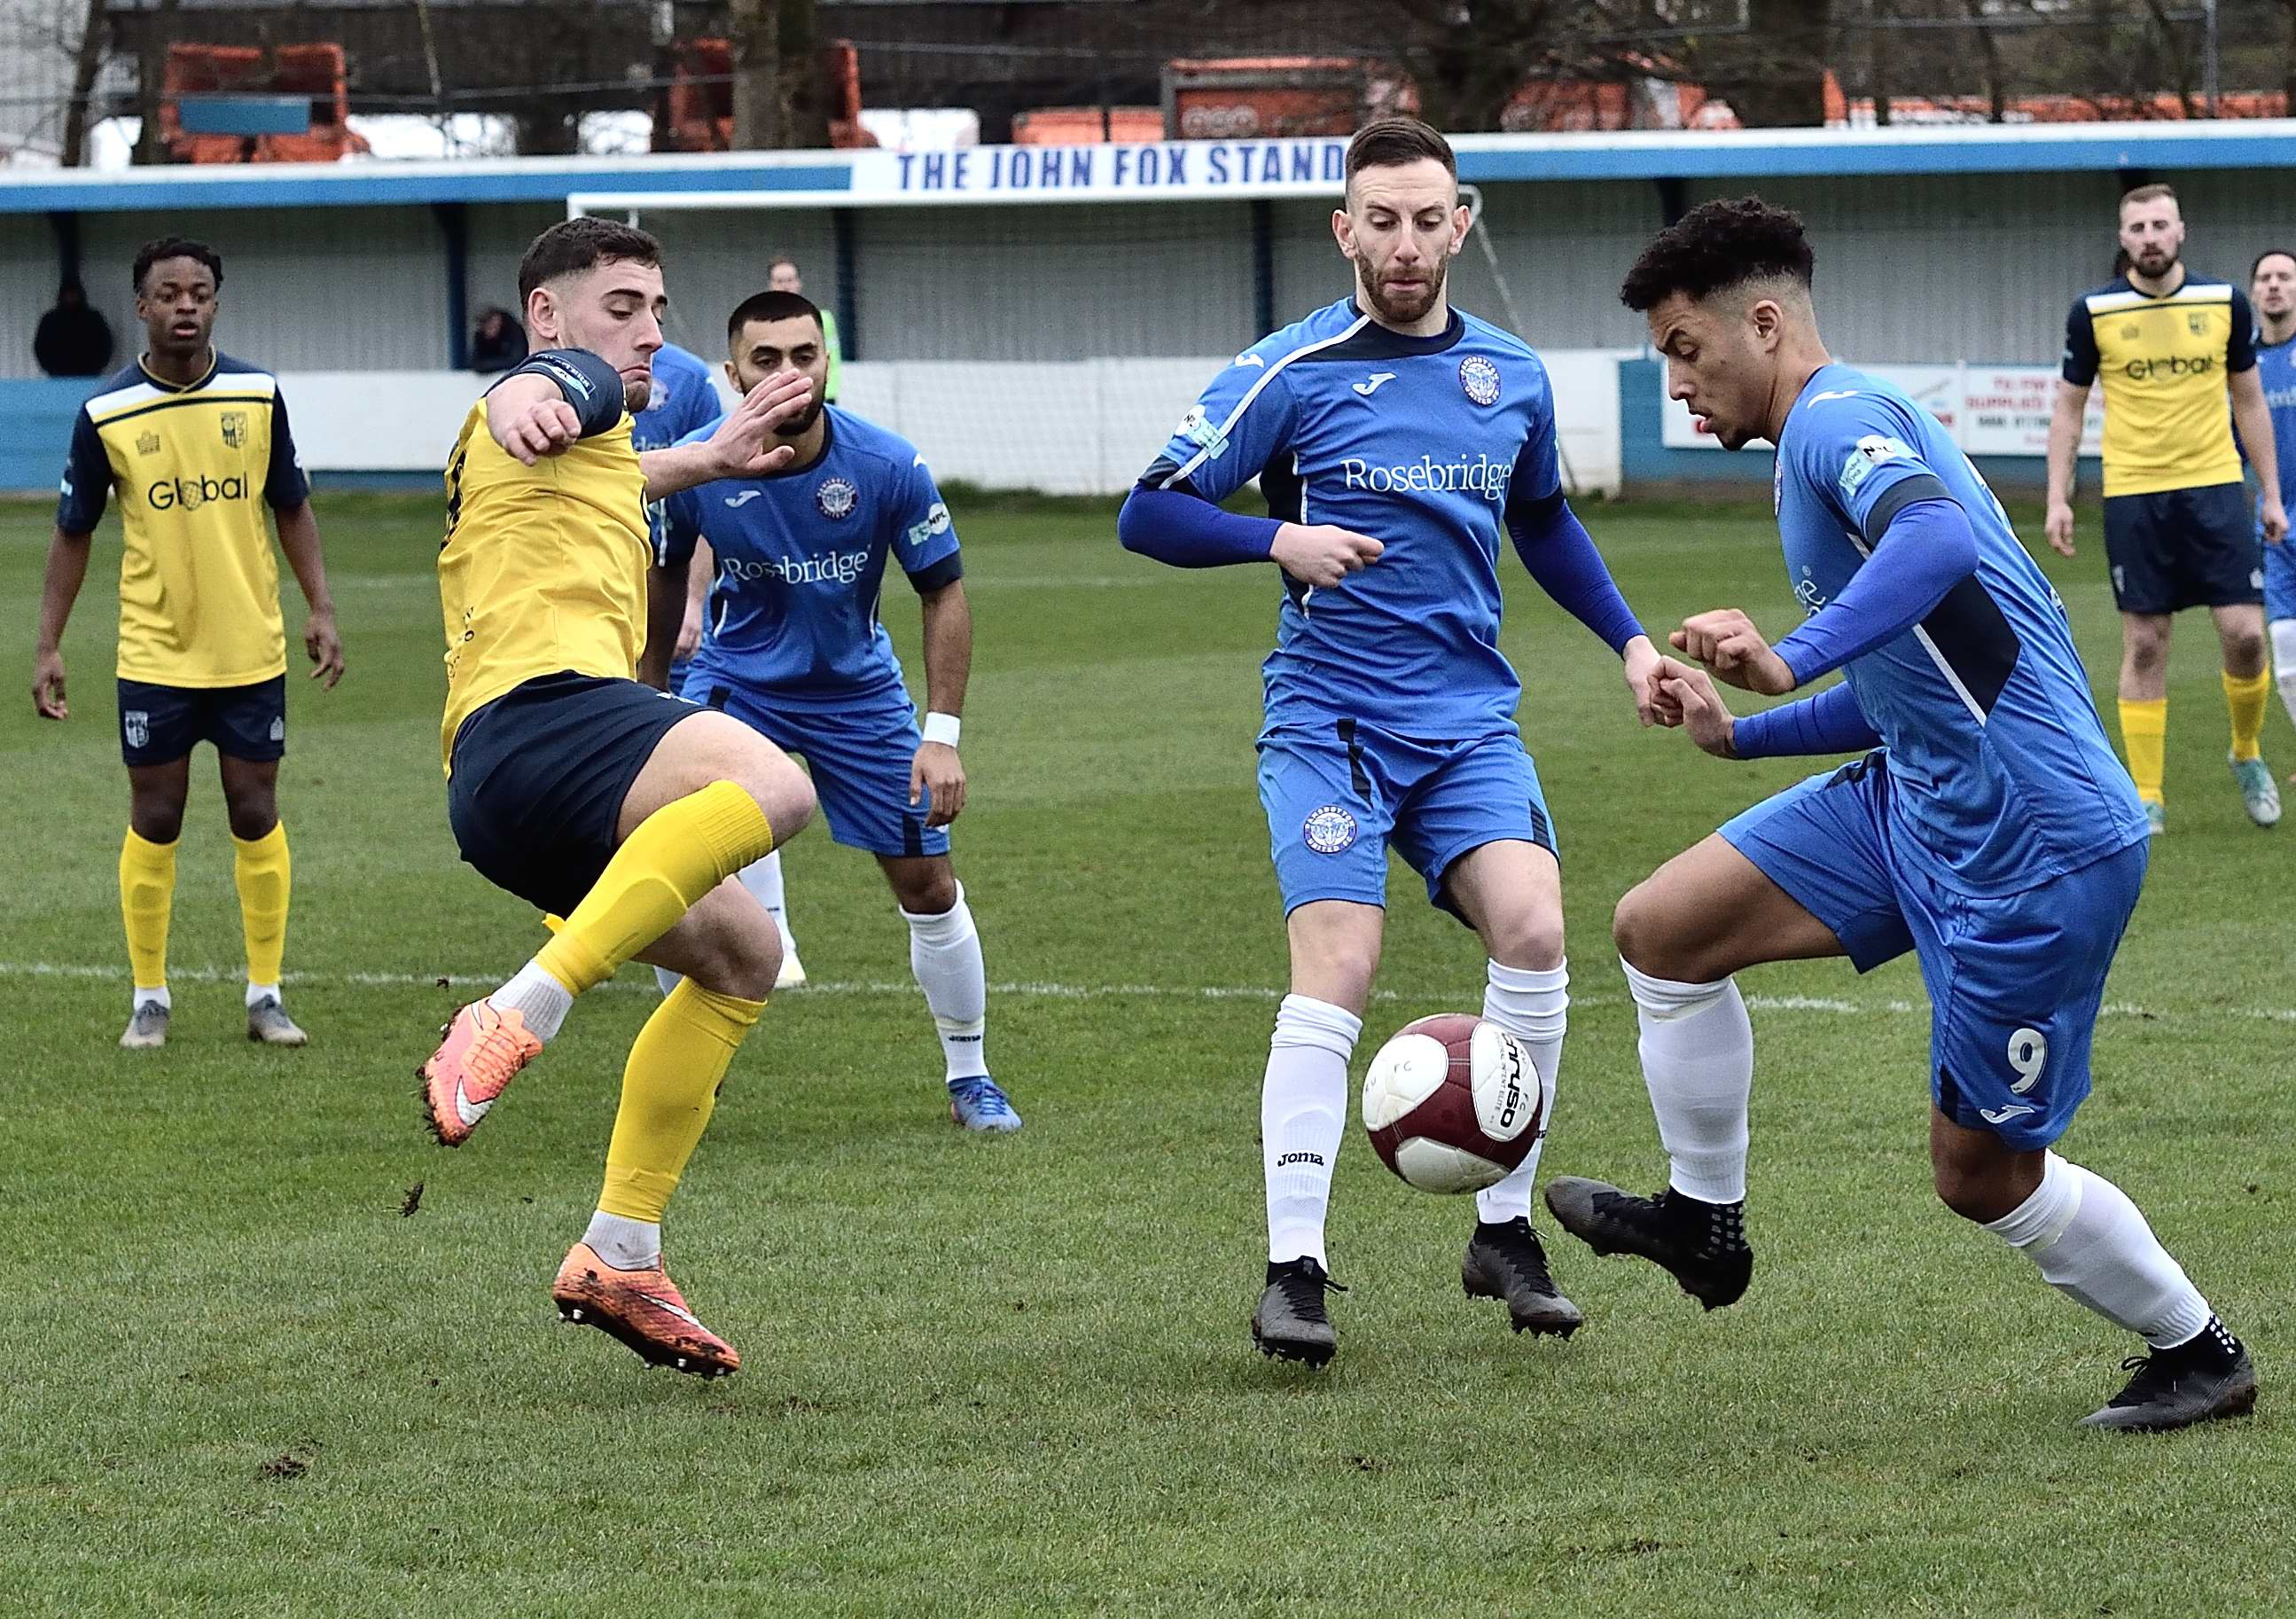 Rams 3 Tadcaster 0 - Match action